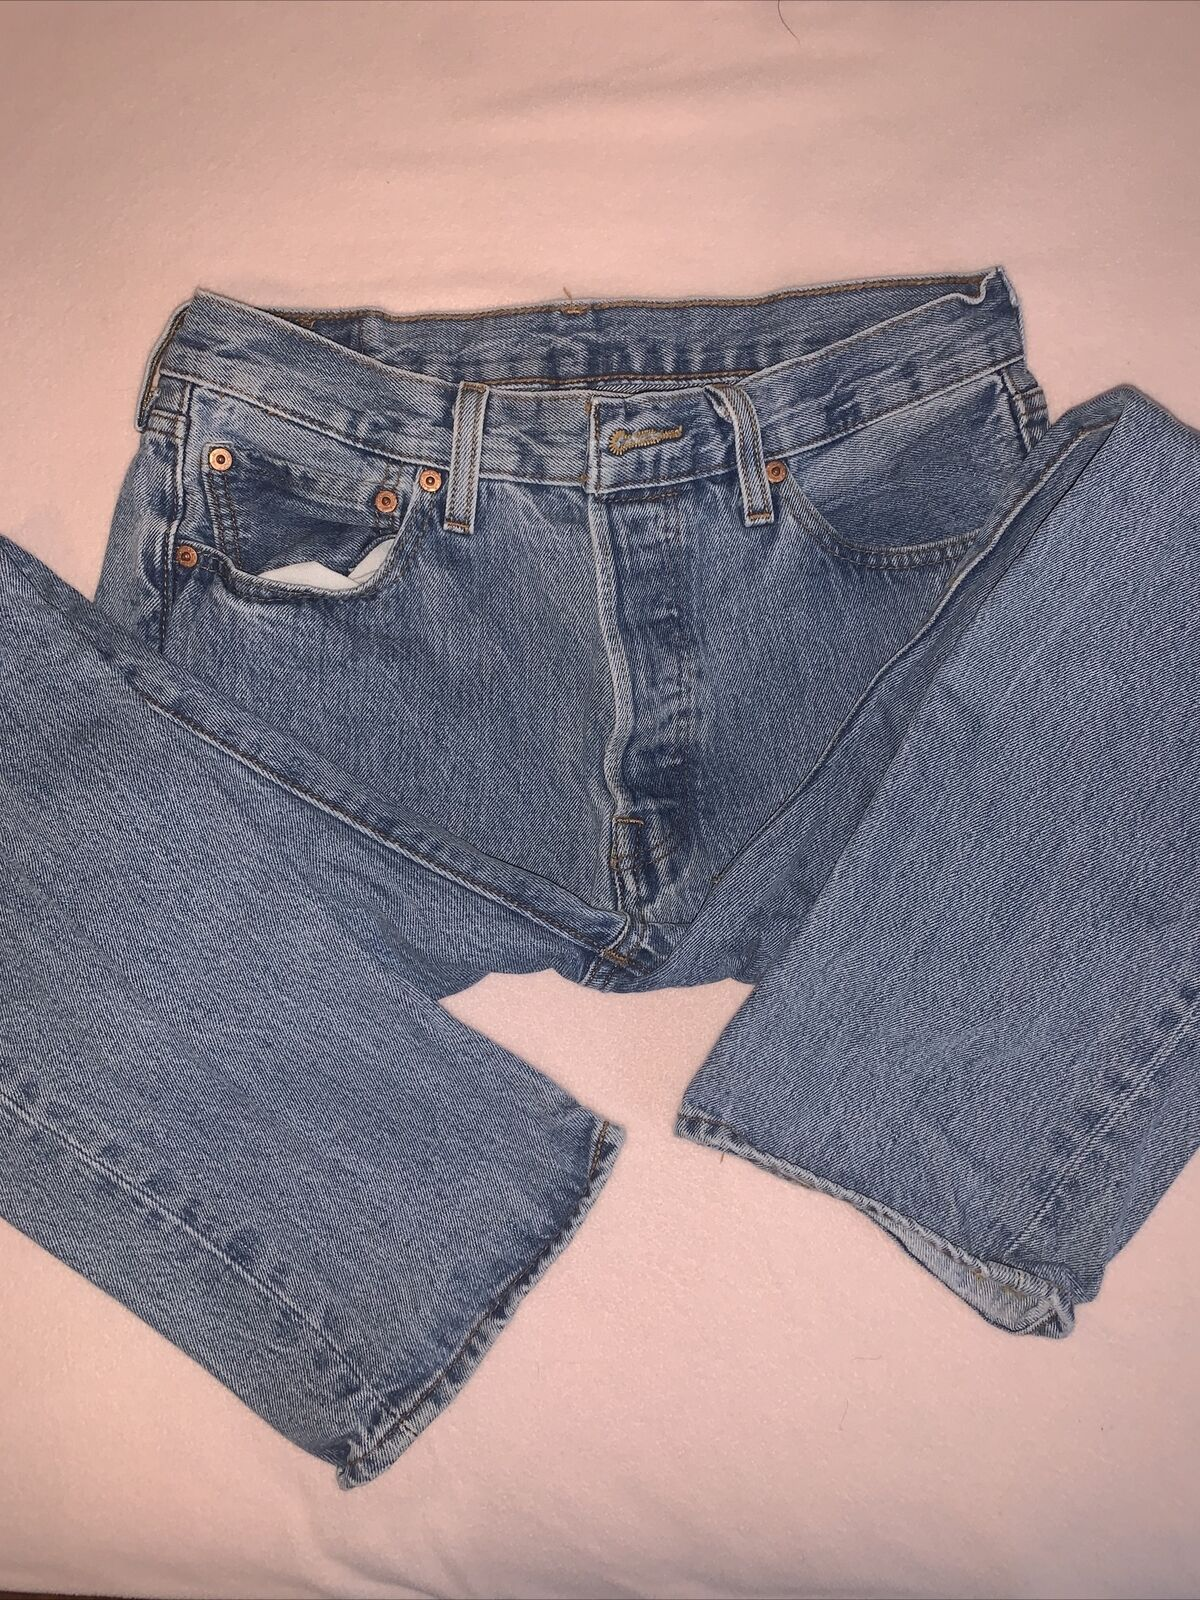 levis 501 made in usa 32x30 - image 3